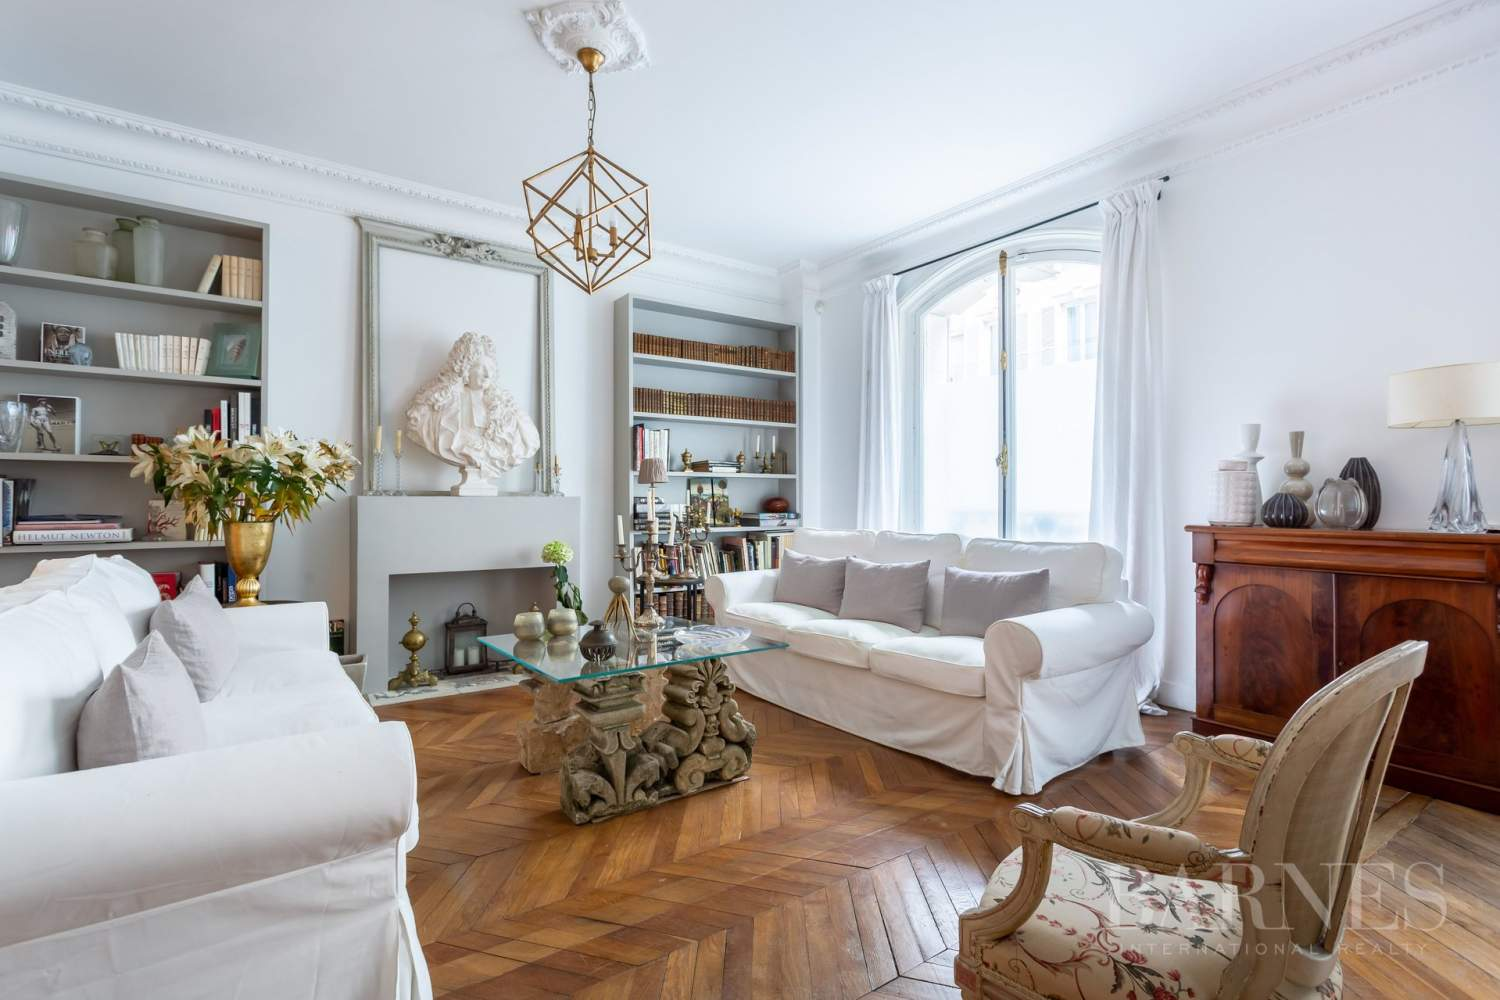 Sole Agent - Neuilly Sablons - Beautiful period parquet, mouldings, fireplace - garden picture 2